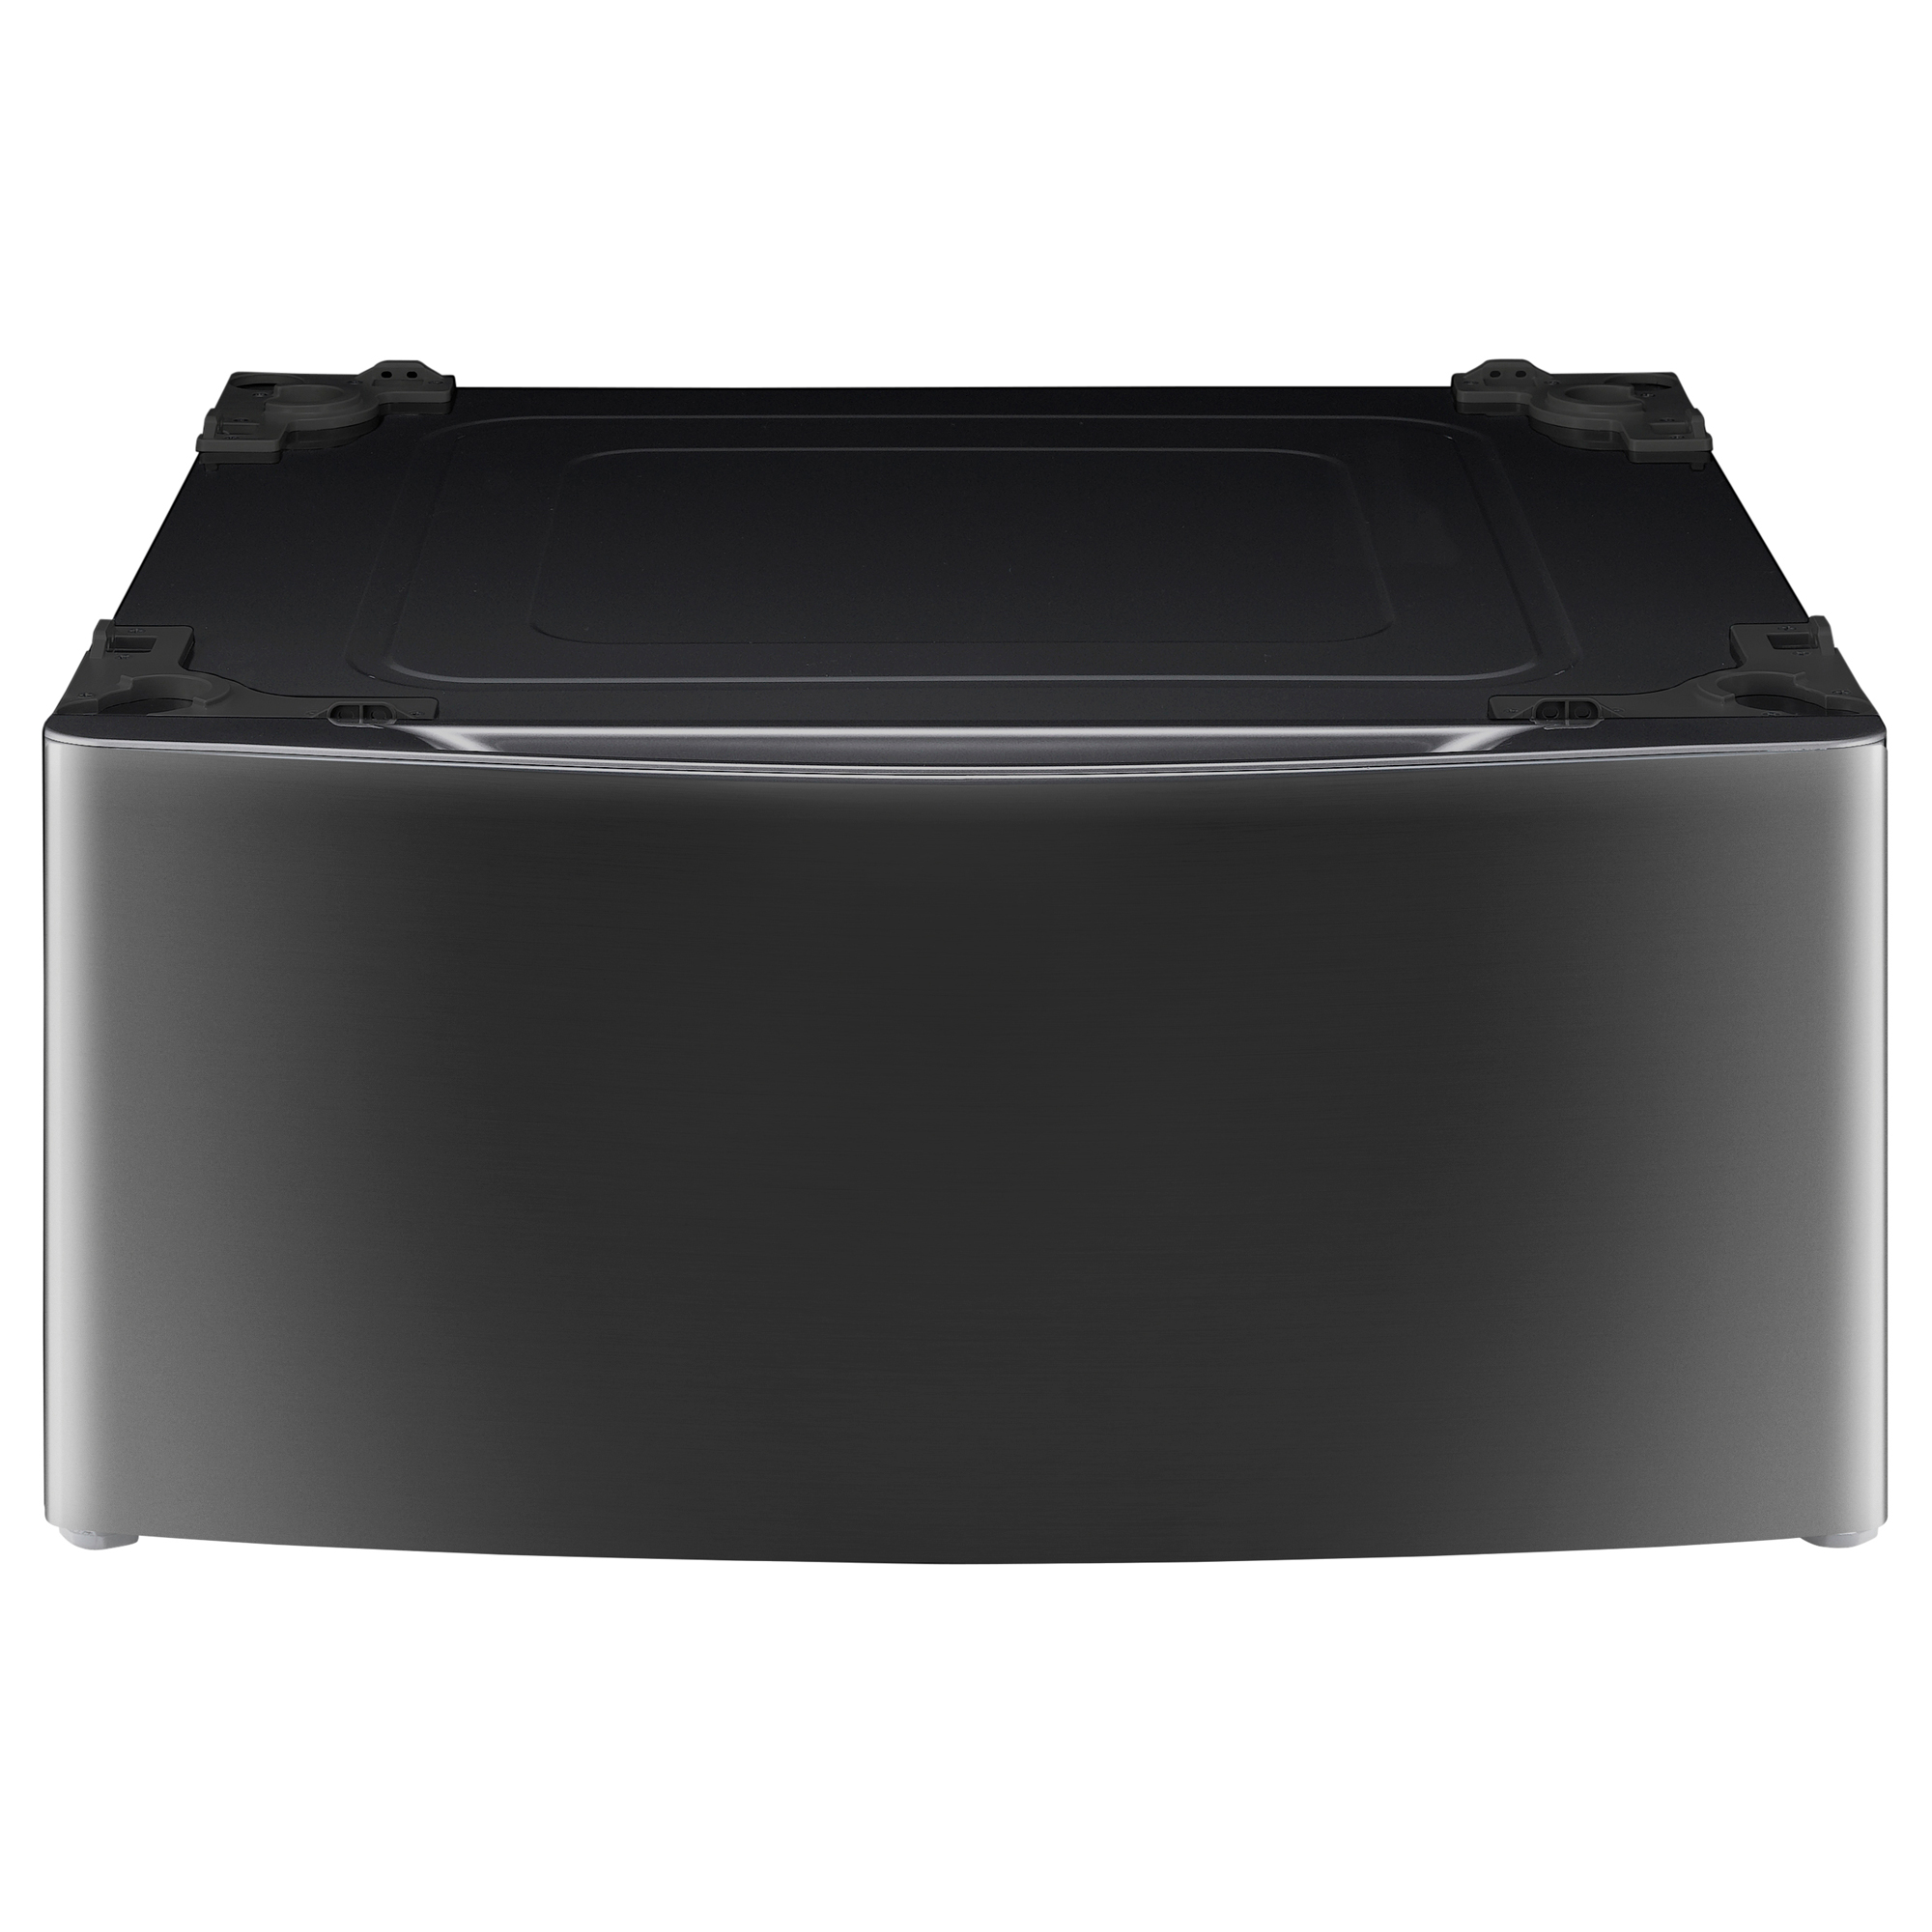 "Image of ""LG SIGNATURE WDP5K 13.9"""" Laundry Pedestal - Black Stainless Steel"""